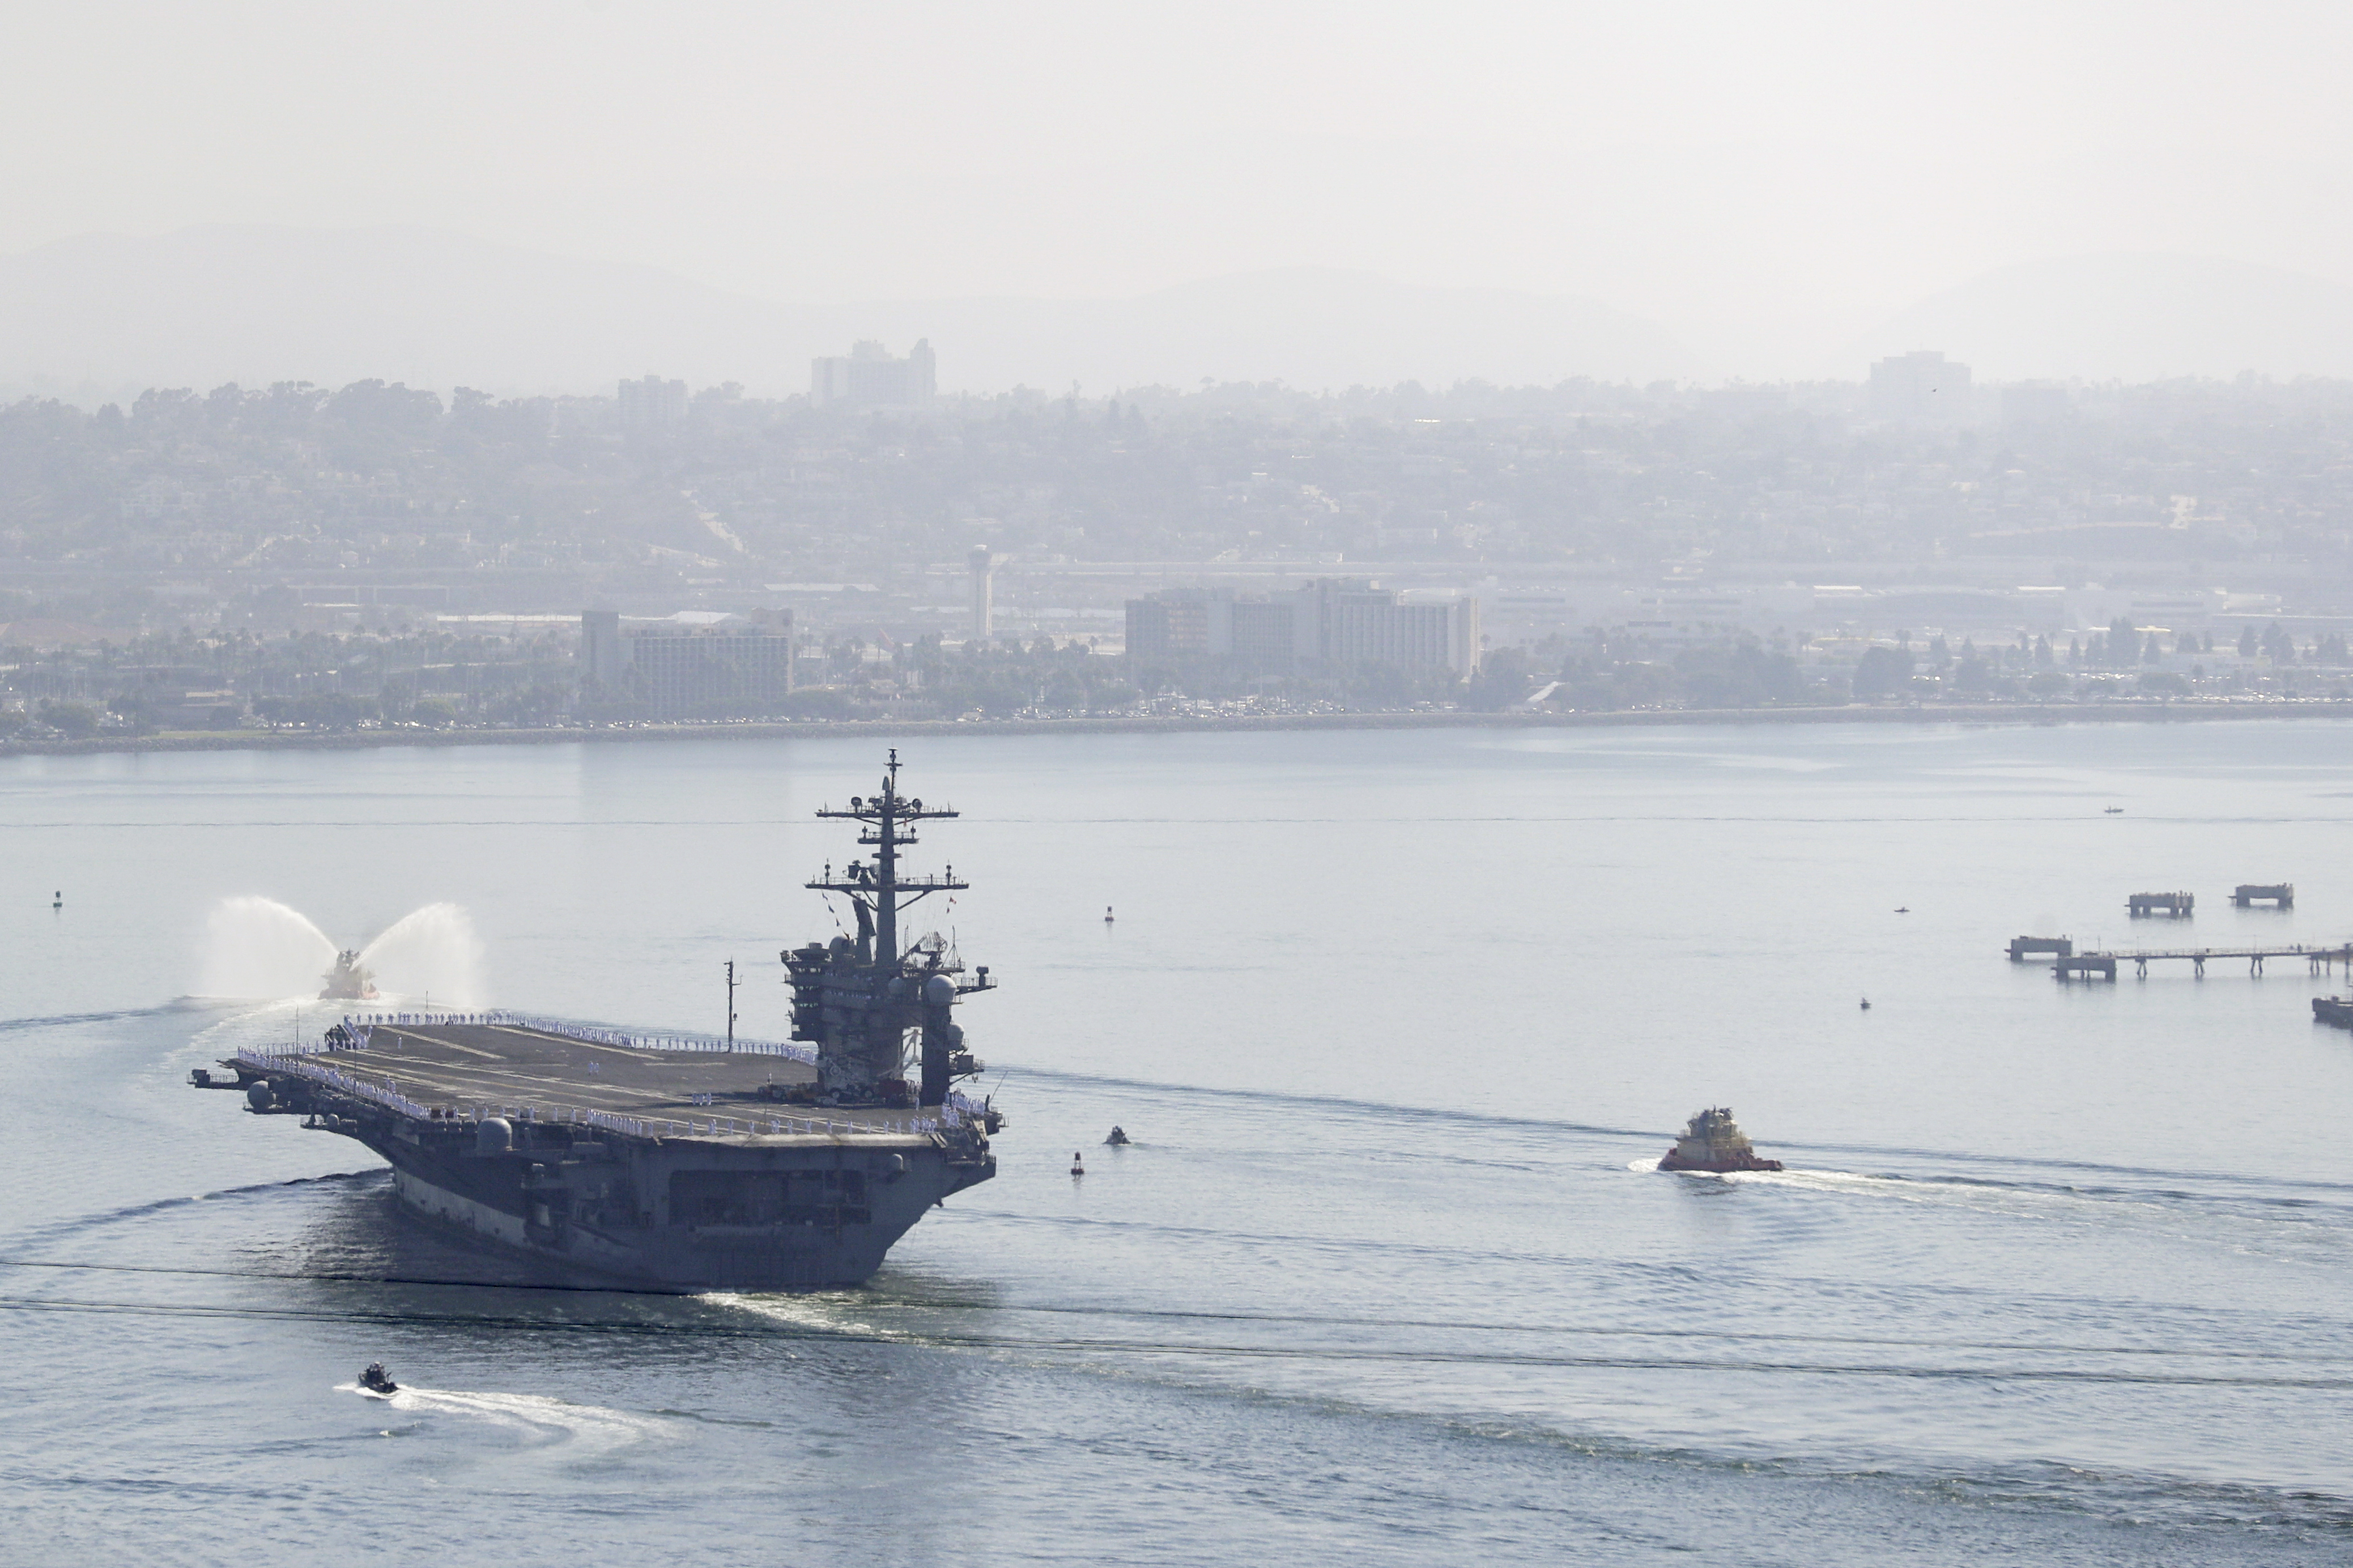 The U.S.S. Theodore Roosevelt aircraft carrier makes its way into San Diego Bay Thursday, July 9, 2020, seen from San Diego. The carrier returned home to San Diego Thursday, led by a new captain who came aboard after the previous commander was fired and the Navy secretary resigned over the handling of a massive COVID-19 outbreak on board.